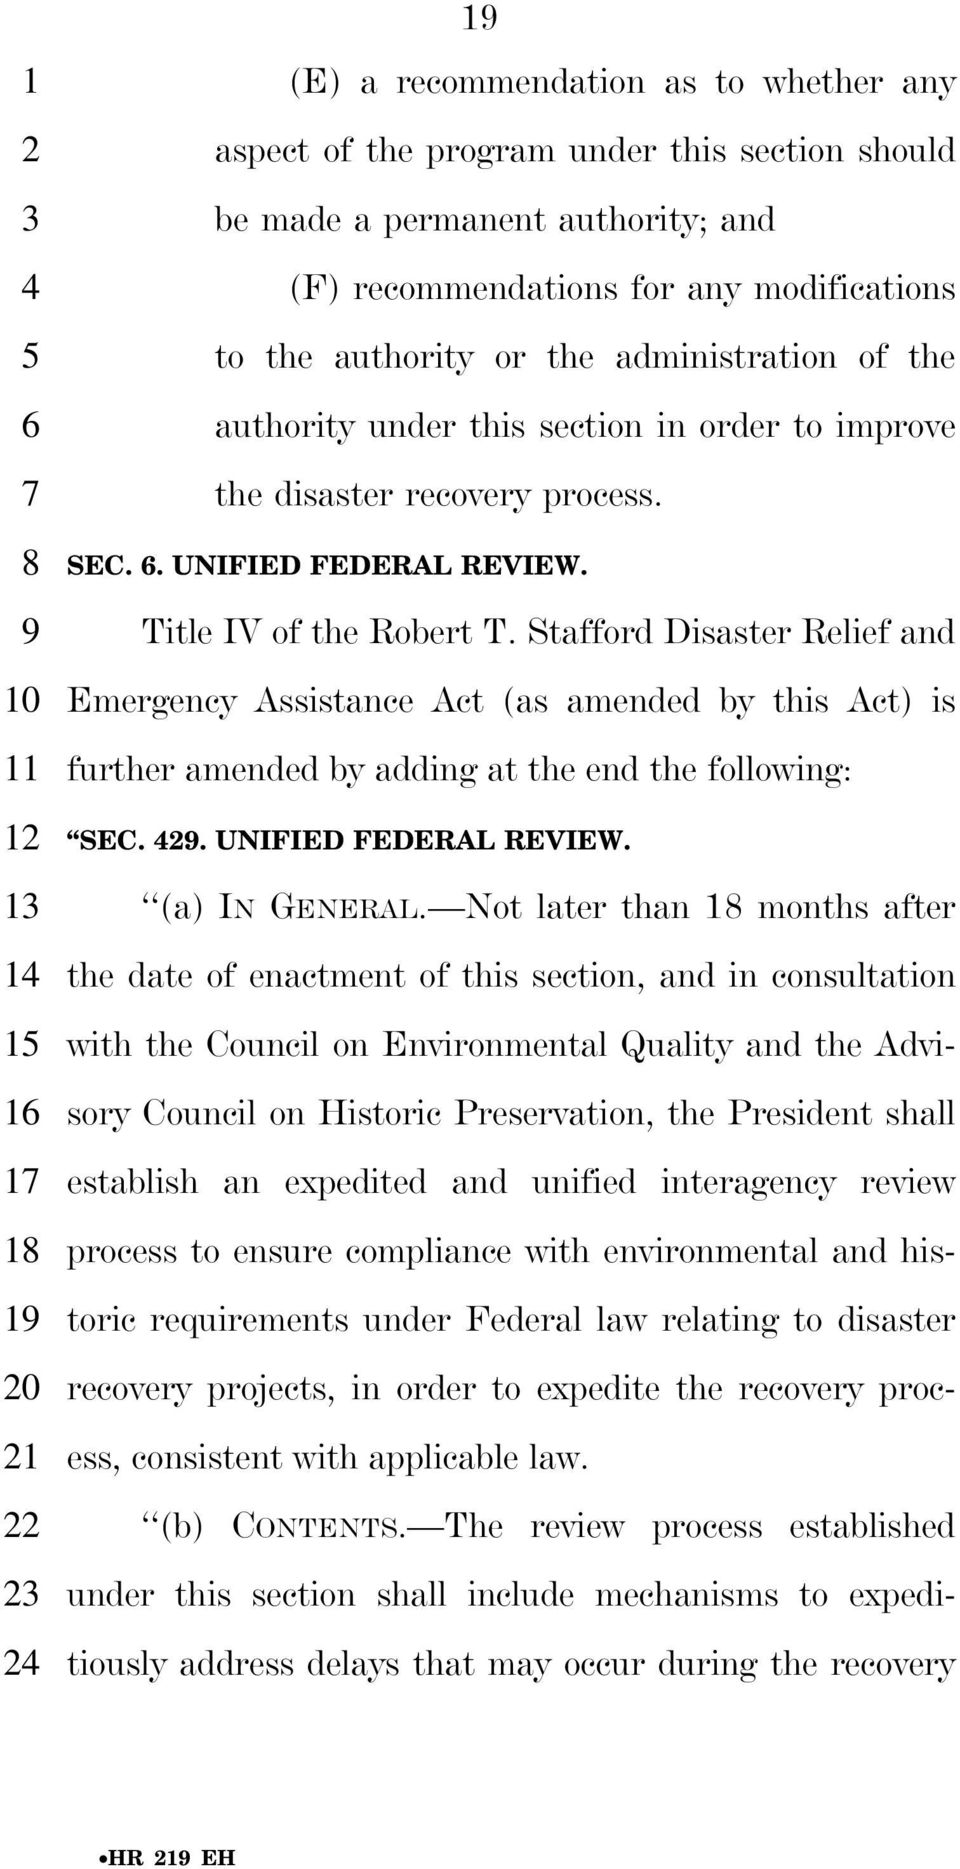 Stafford Disaster Relief and Emergency Assistance Act (as amended by this Act) is further amended by adding at the end the following: SEC.. UNIFIED FEDERAL REVIEW. (a) IN GENERAL.